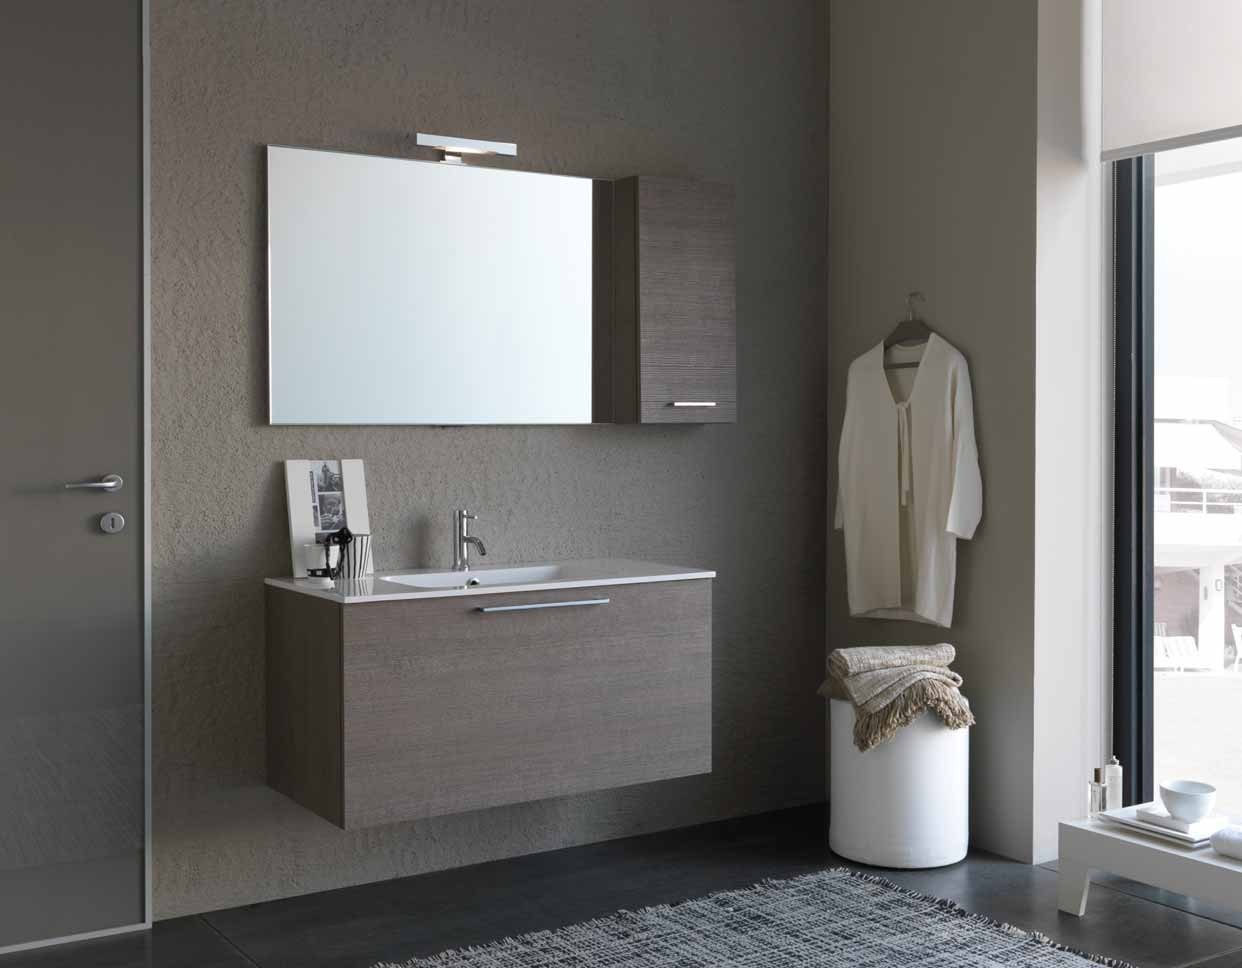 Mobile bagno design moderno base lavabo sospesa con for Design bagno